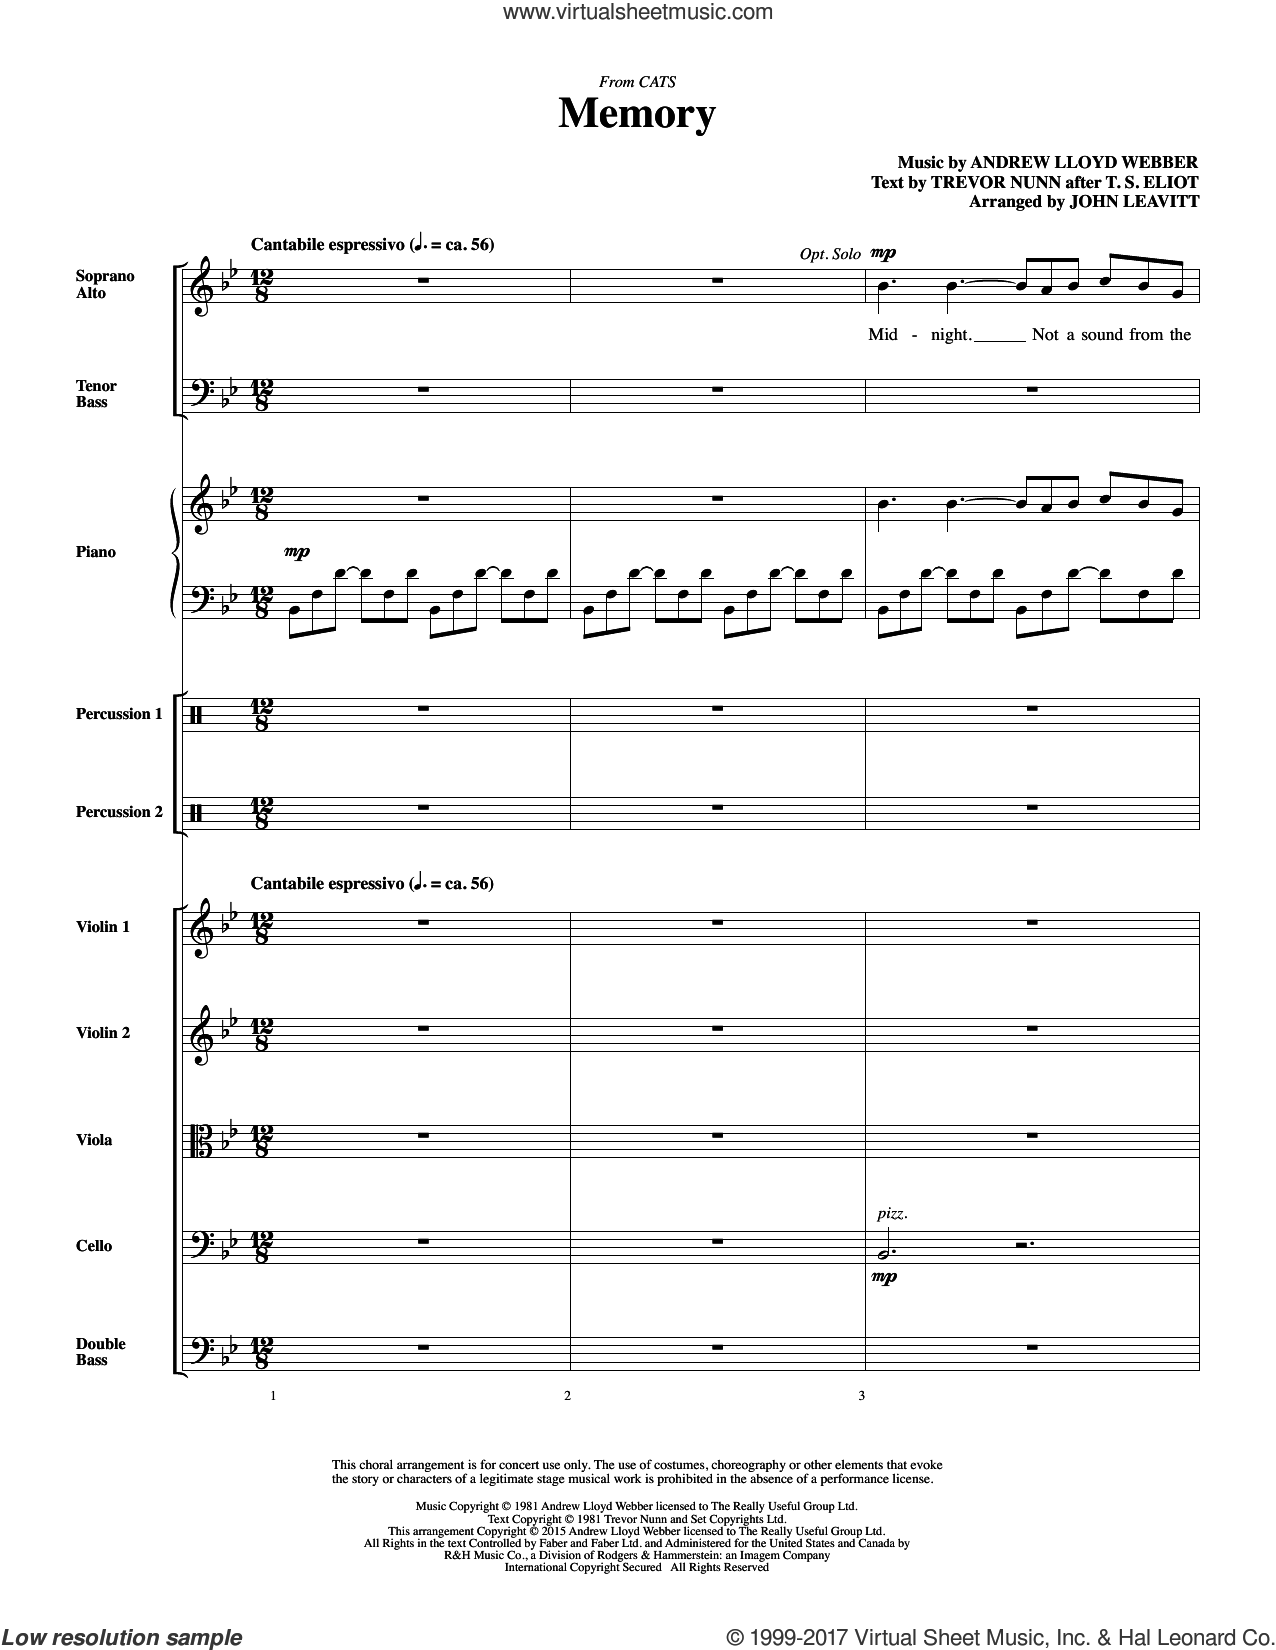 Memory (from Cats) (arr. John Leavitt) (COMPLETE) sheet music for orchestra/band by Andrew Lloyd Webber, Barbra Streisand, John Leavitt and Trevor Nunn, wedding score, intermediate skill level